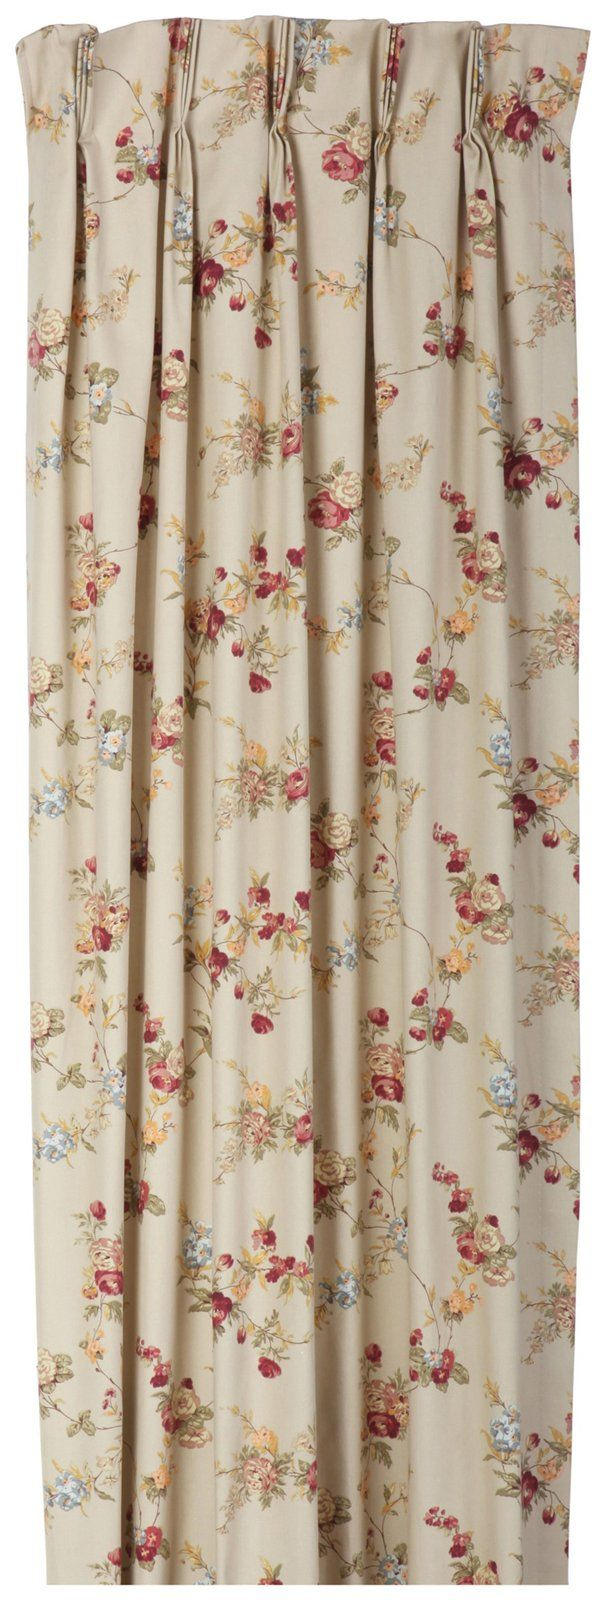 Ellis Curtain Fireside Floral Pinch Pleated Thermal Insulated Drapes..A thermal insulated foam back   improves light blocking & insulating qualities, saving energy & money year round. They  hold drafts, keeping out the cold & retaining heat during winter & during summer they block the suns rays  keeping the heat out retaining the cool air from the air conditioner. The pregathered pleated curtains are easily hung on a drapery/ traverse rod with drapery rings & pinch clips/ drapery hooks.